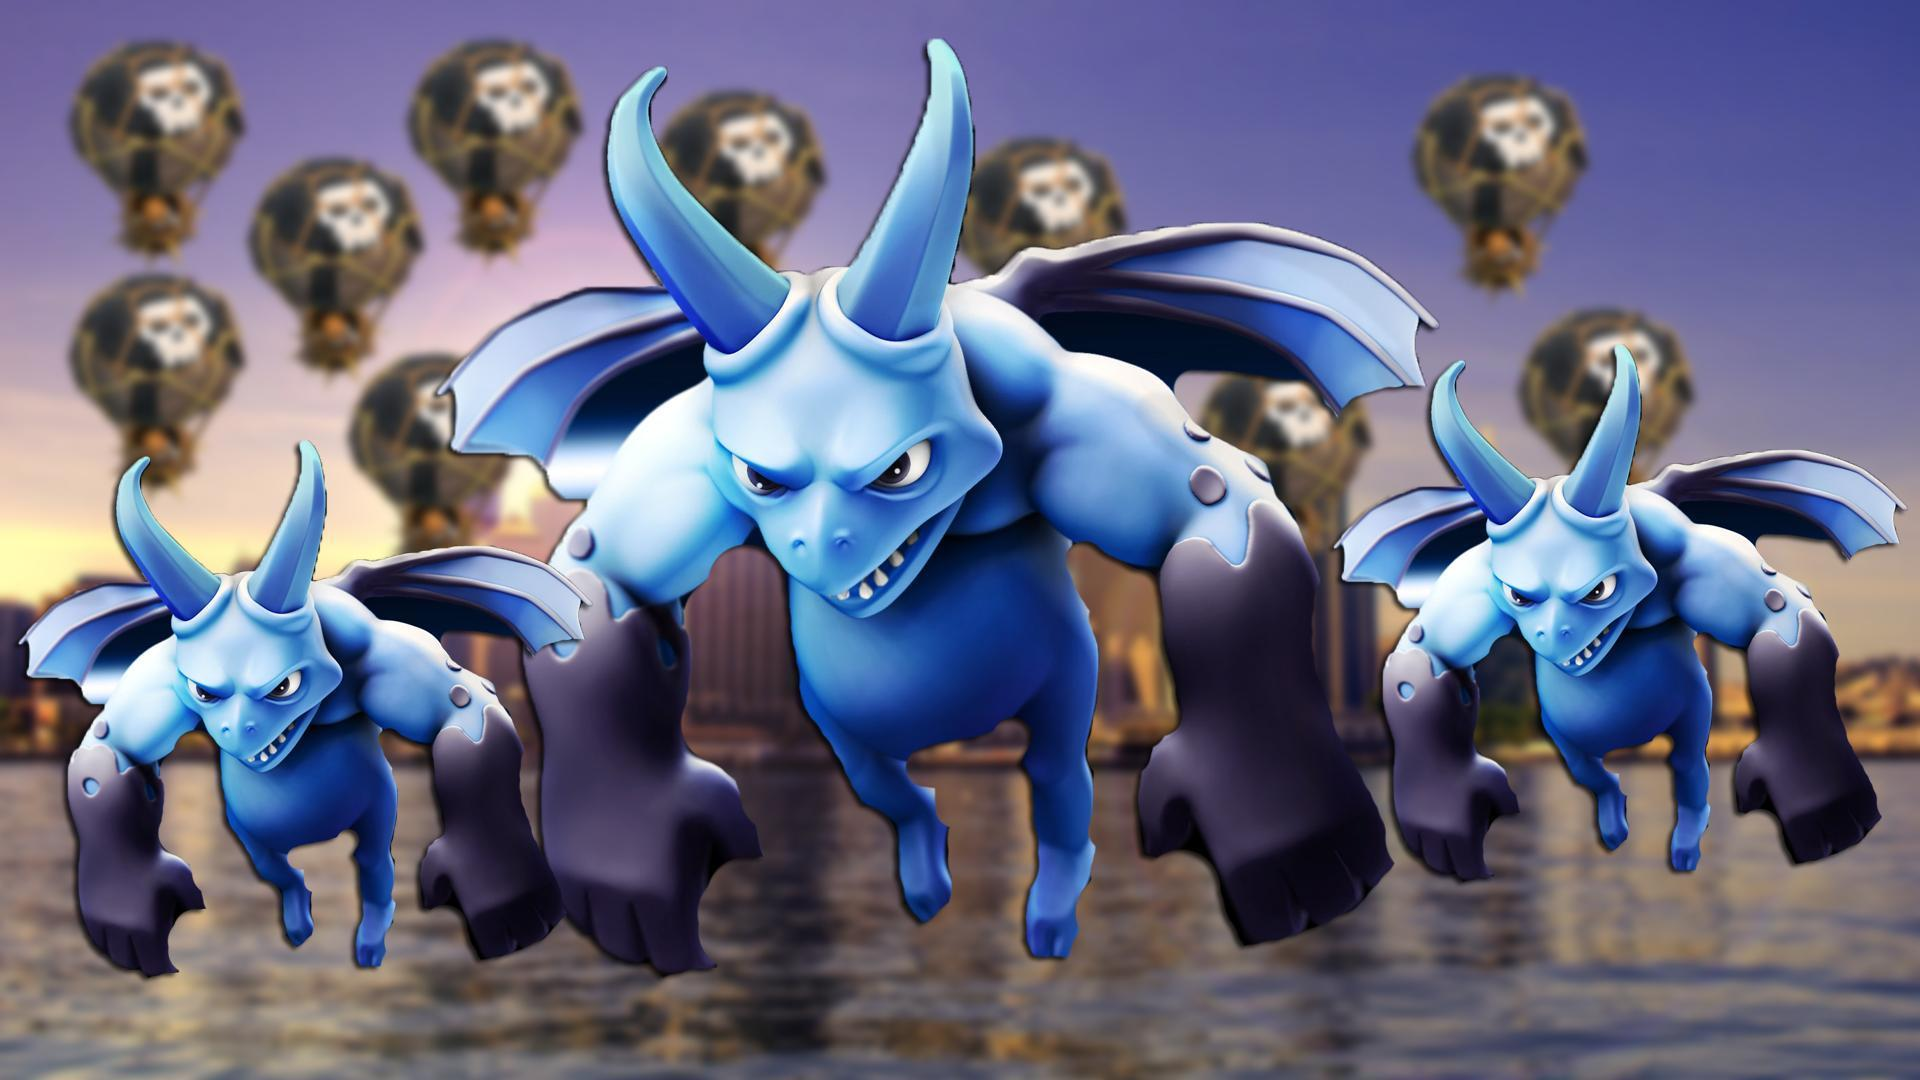 Clash of Clans Wallpaper › Heroes, Units, City Wallpaper and Artworks